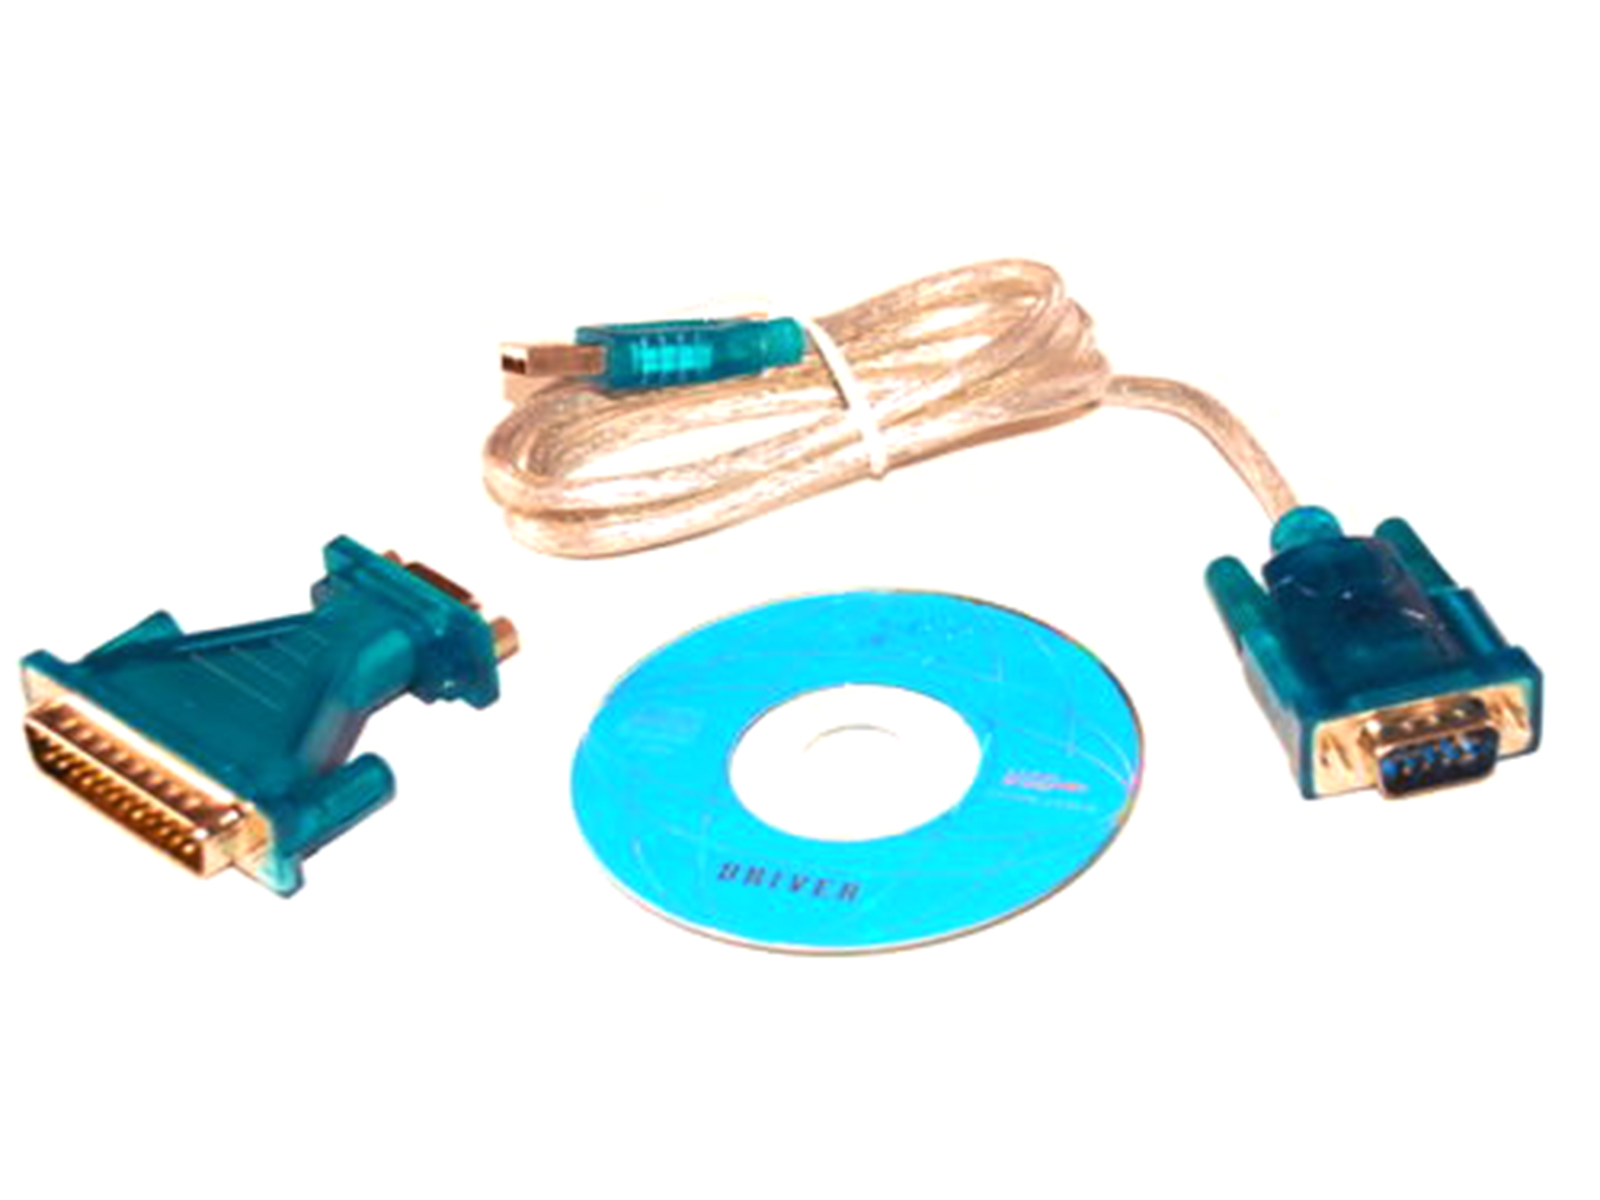 USB 2.0 to Serial RS232 Cable 9 Pin DB9 to 25 Pin 5DB25 Male Adapter Usb To Rs Wiring Diagram Db on serial port wiring-diagram, usb wire diagram and function, rj45 wiring-diagram, mini usb wiring-diagram, mitsubishi plc wiring-diagram, usb 2.0 cable diagram, usb connections diagram, usb cable wiring connections, rj11 cat5 wiring-diagram, ide to sata wiring-diagram, usb port diagram, usb wiring-diagram wires, micro usb wiring-diagram, db9 wiring-diagram, usb 3.0 wiring-diagram, usb cable wiring diagram, ps2 to serial wiring-diagram,